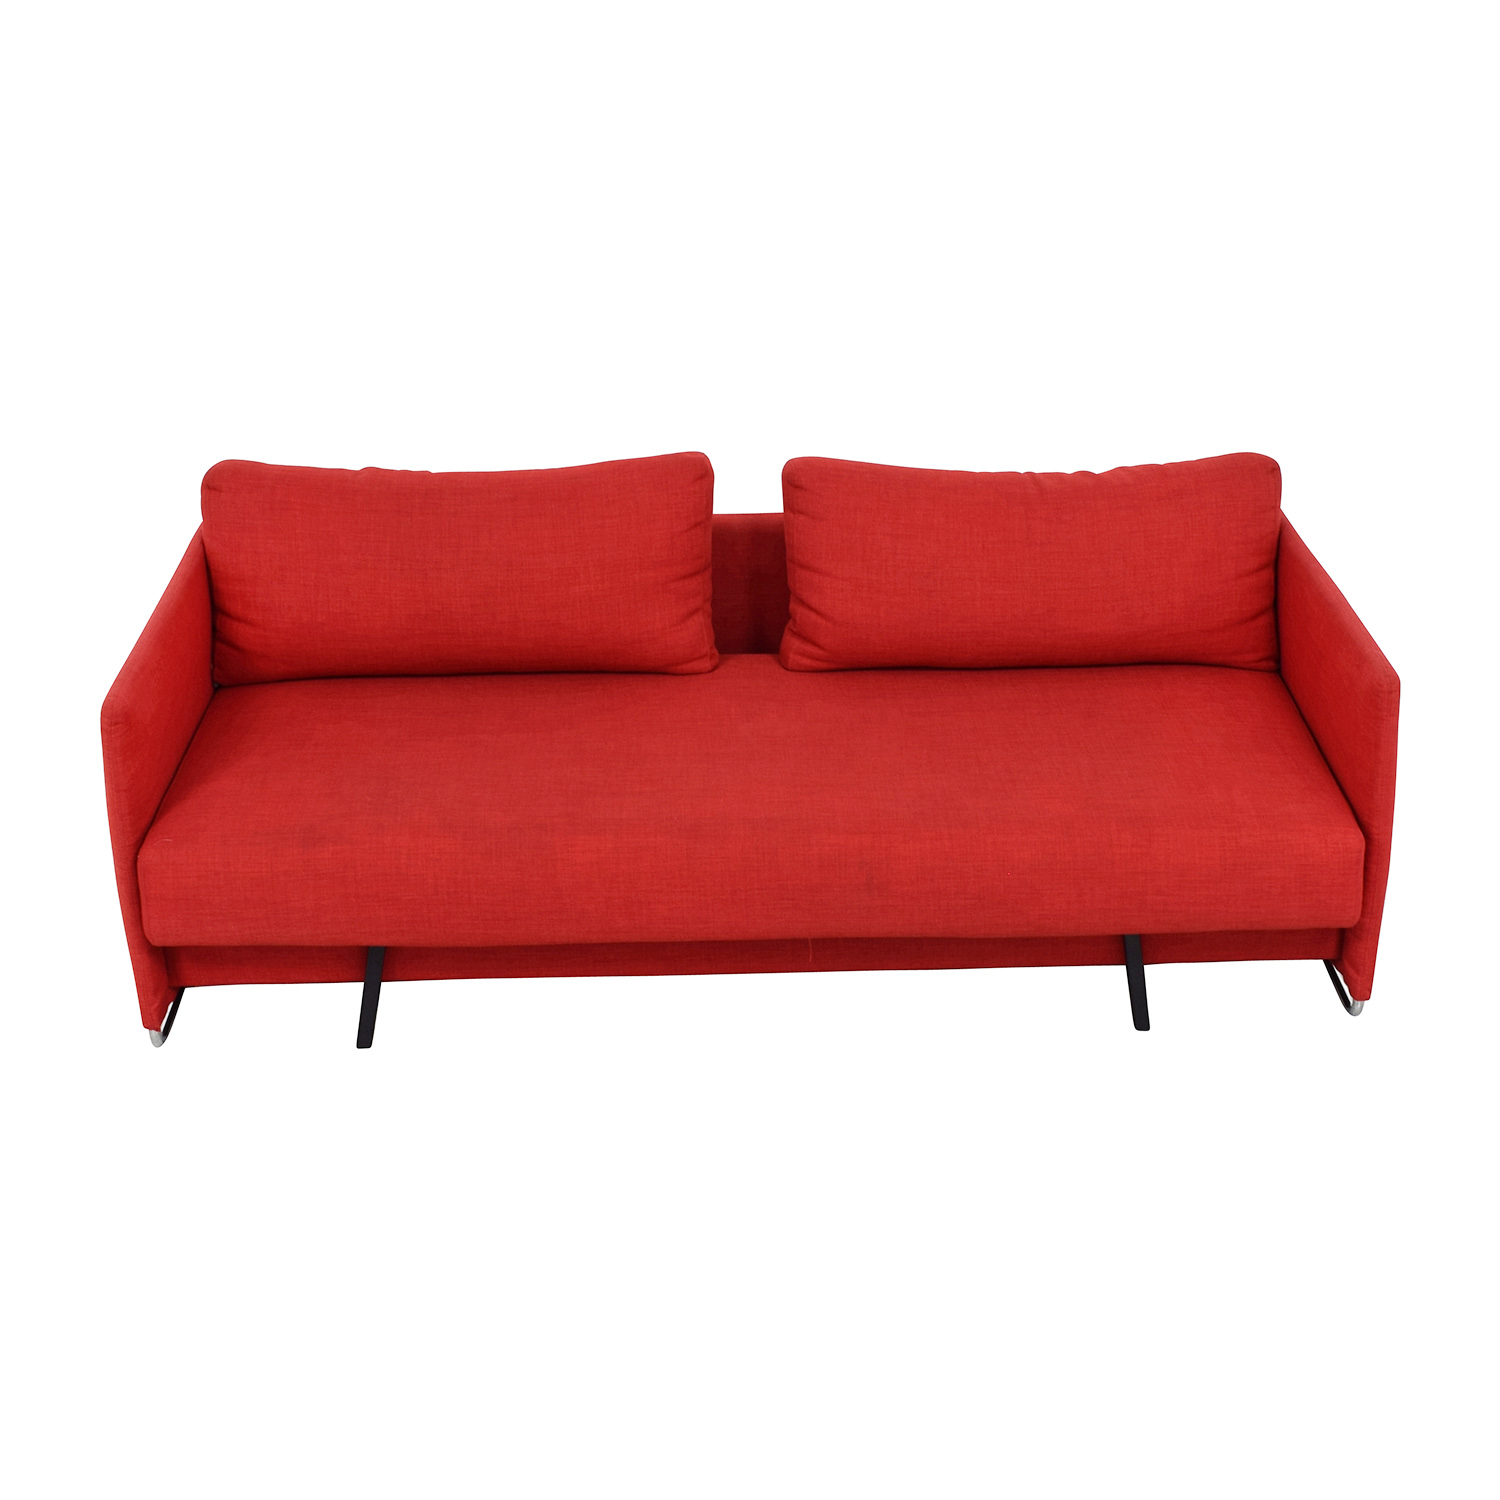 CB2 CB2 Tandom Red Sleeper Sofa for sale